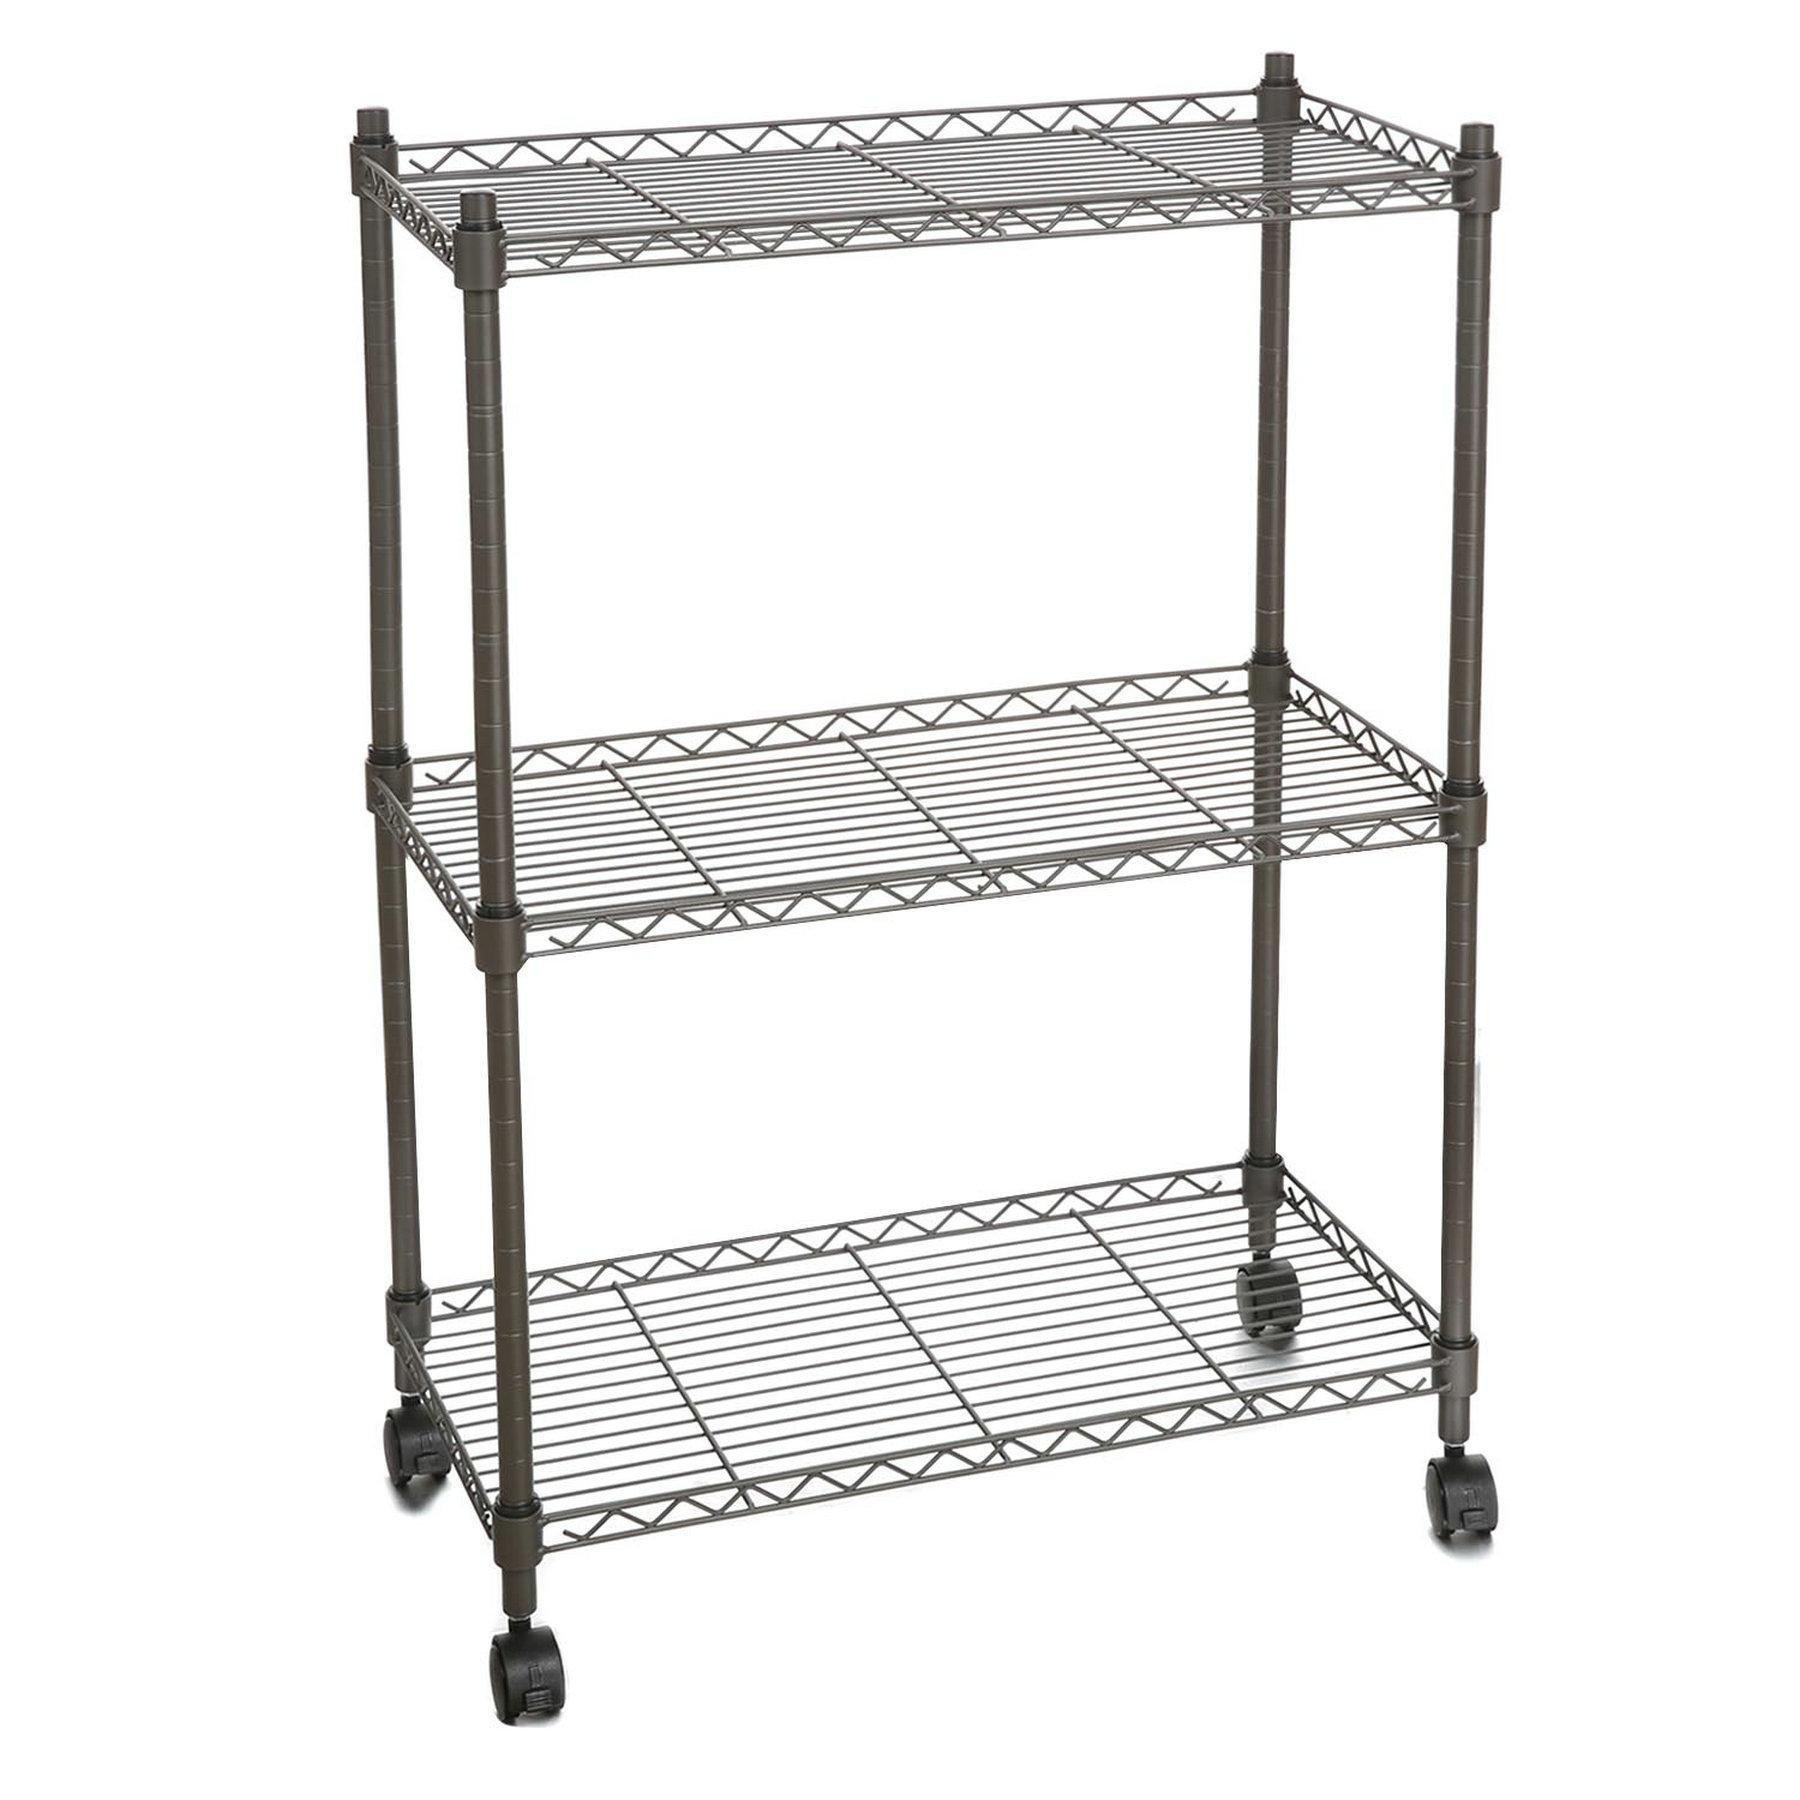 Meflying 3 Tier Wire Shelving, Steel 4 Wheels Rolling Cart Rack Adjustable Shelving Unit Metal Storage Metal Organizer Storage Cart Shelf Cart(US STOCK,3Colors) (Gray)